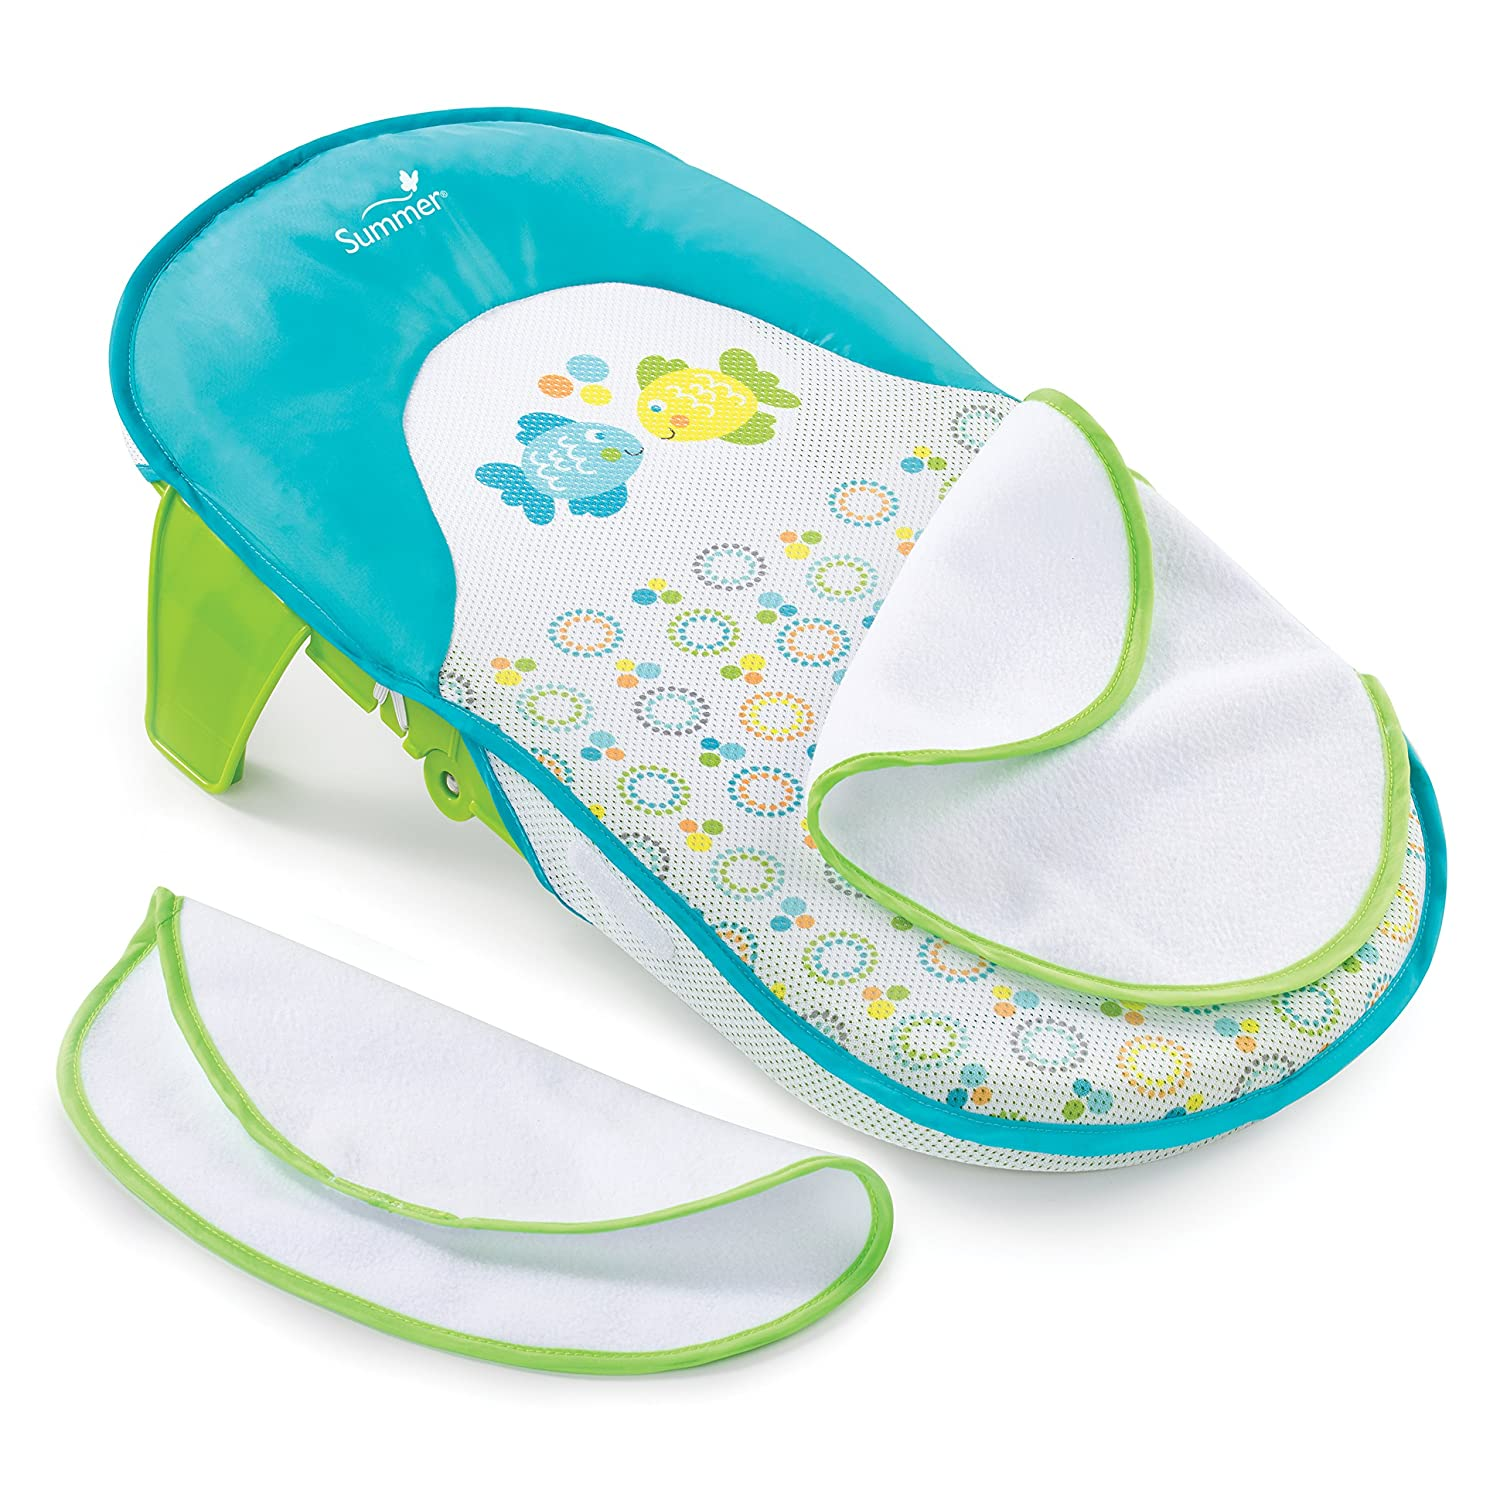 Amazon.com : Summer Infant Bath Sling with Warming Wings : Baby